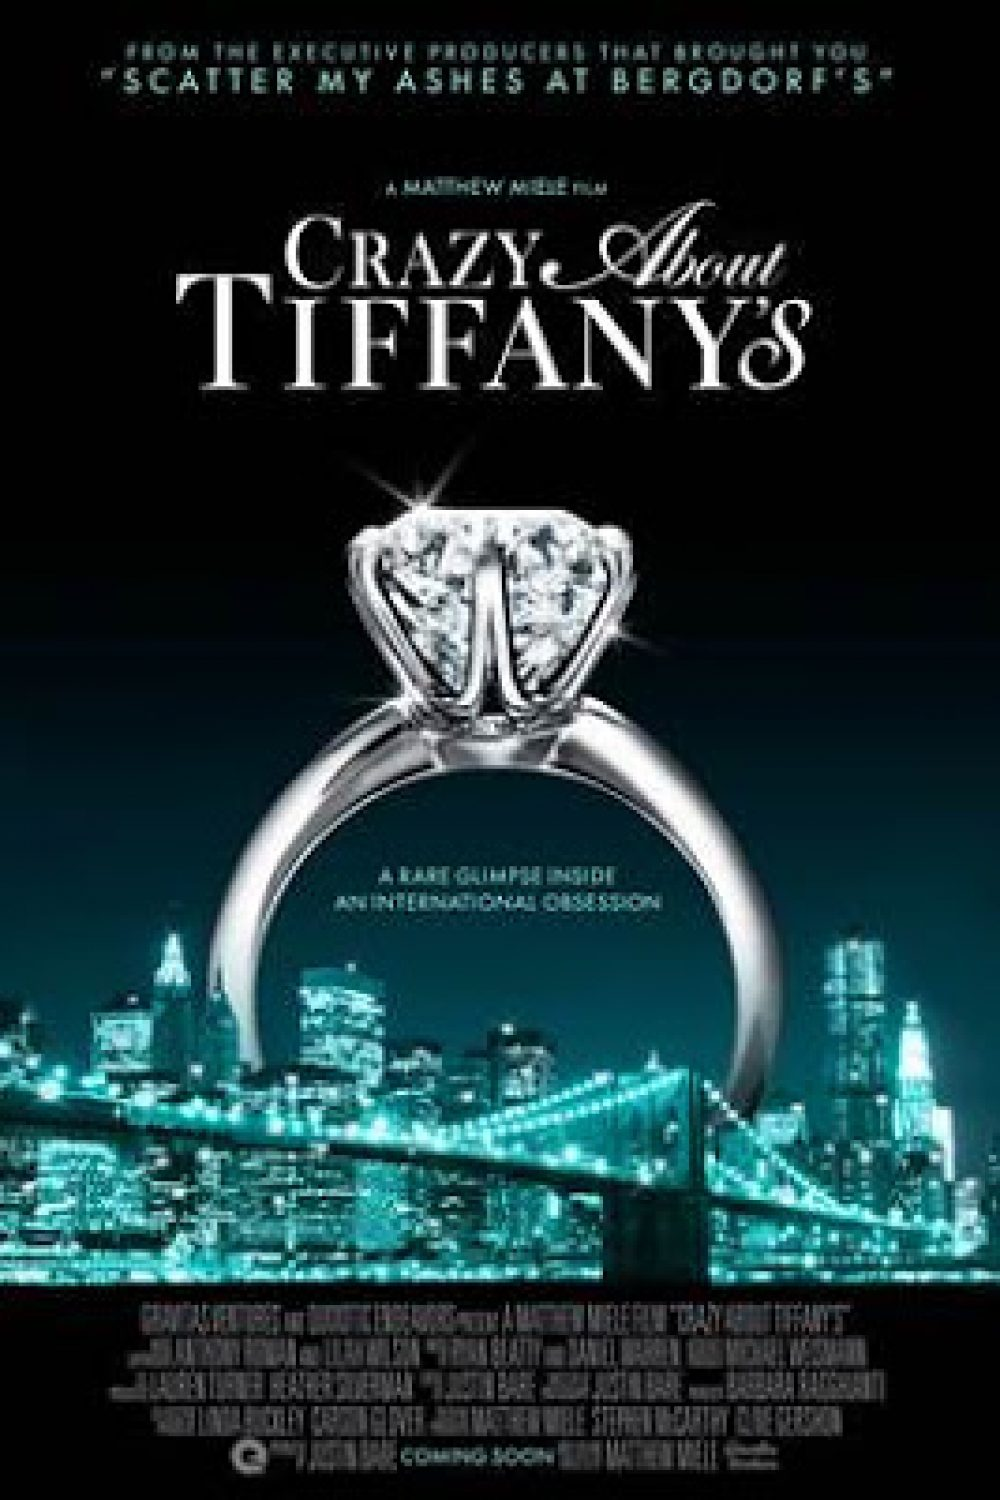 Crazy About Tiffany's: A Sparkling Documentary